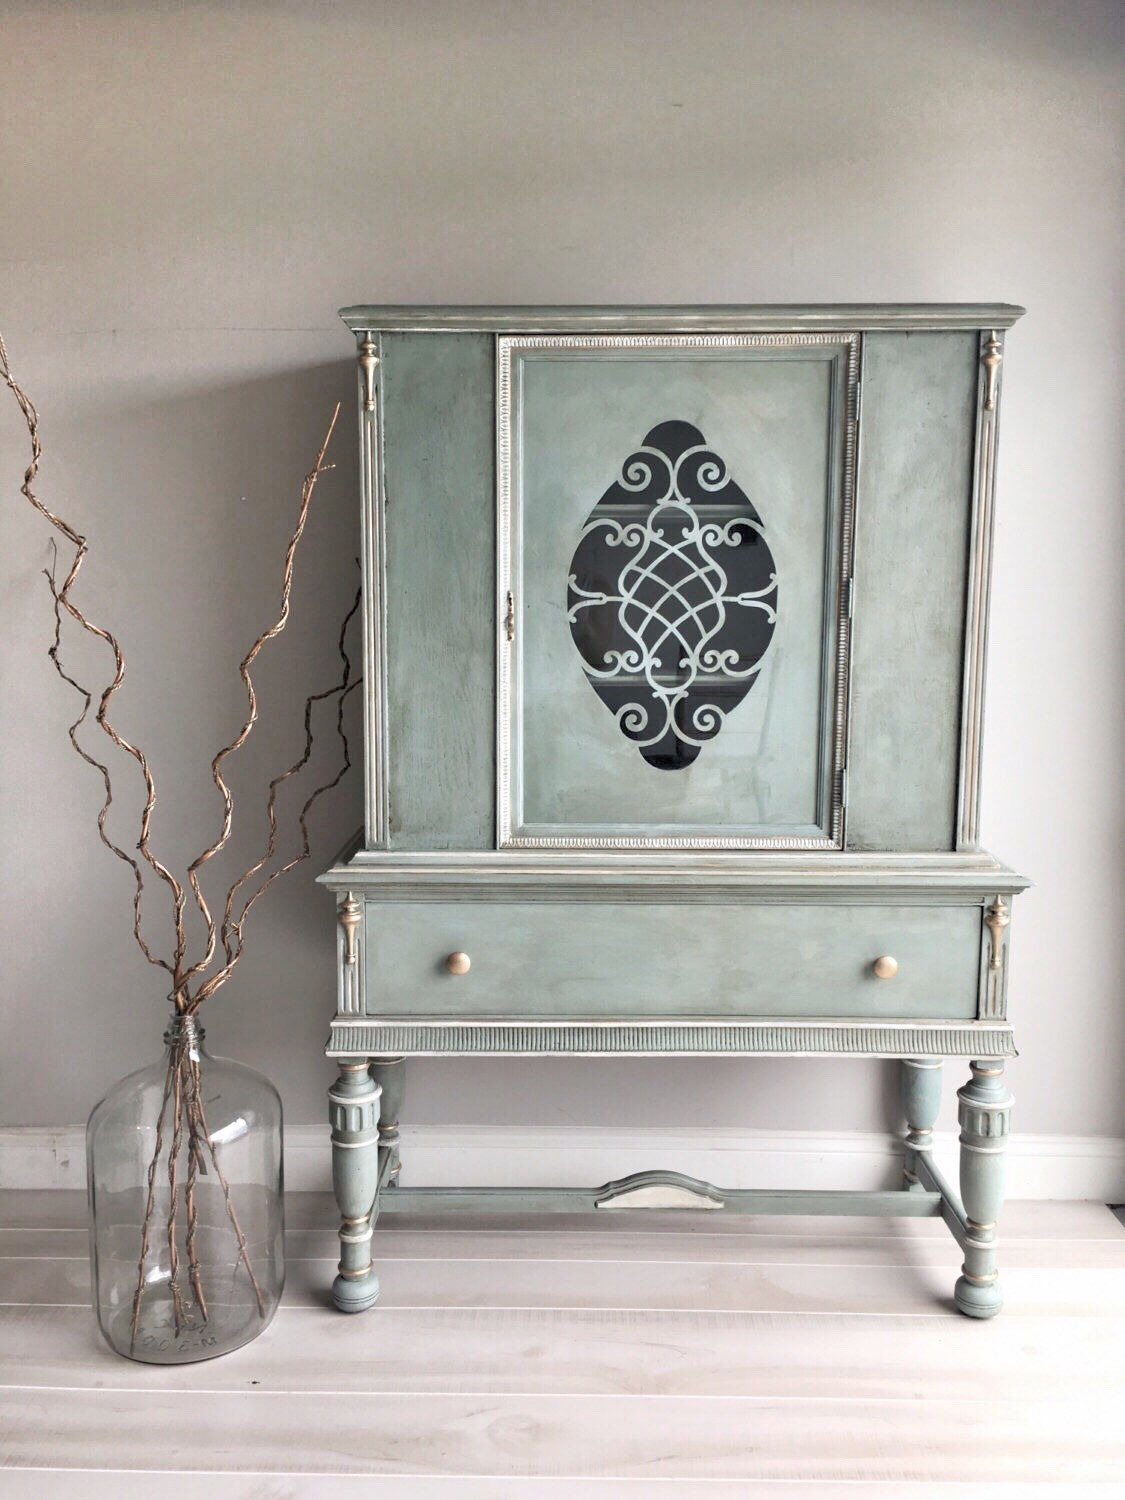 Reloved Chalk Painted Blue Green Vintage China Cabinet Located in Tampa Florida by RelovedHomeDesigns on Etsy https://www.etsy.com/listing/482164355/reloved-chalk-painted-blue-green-vintage